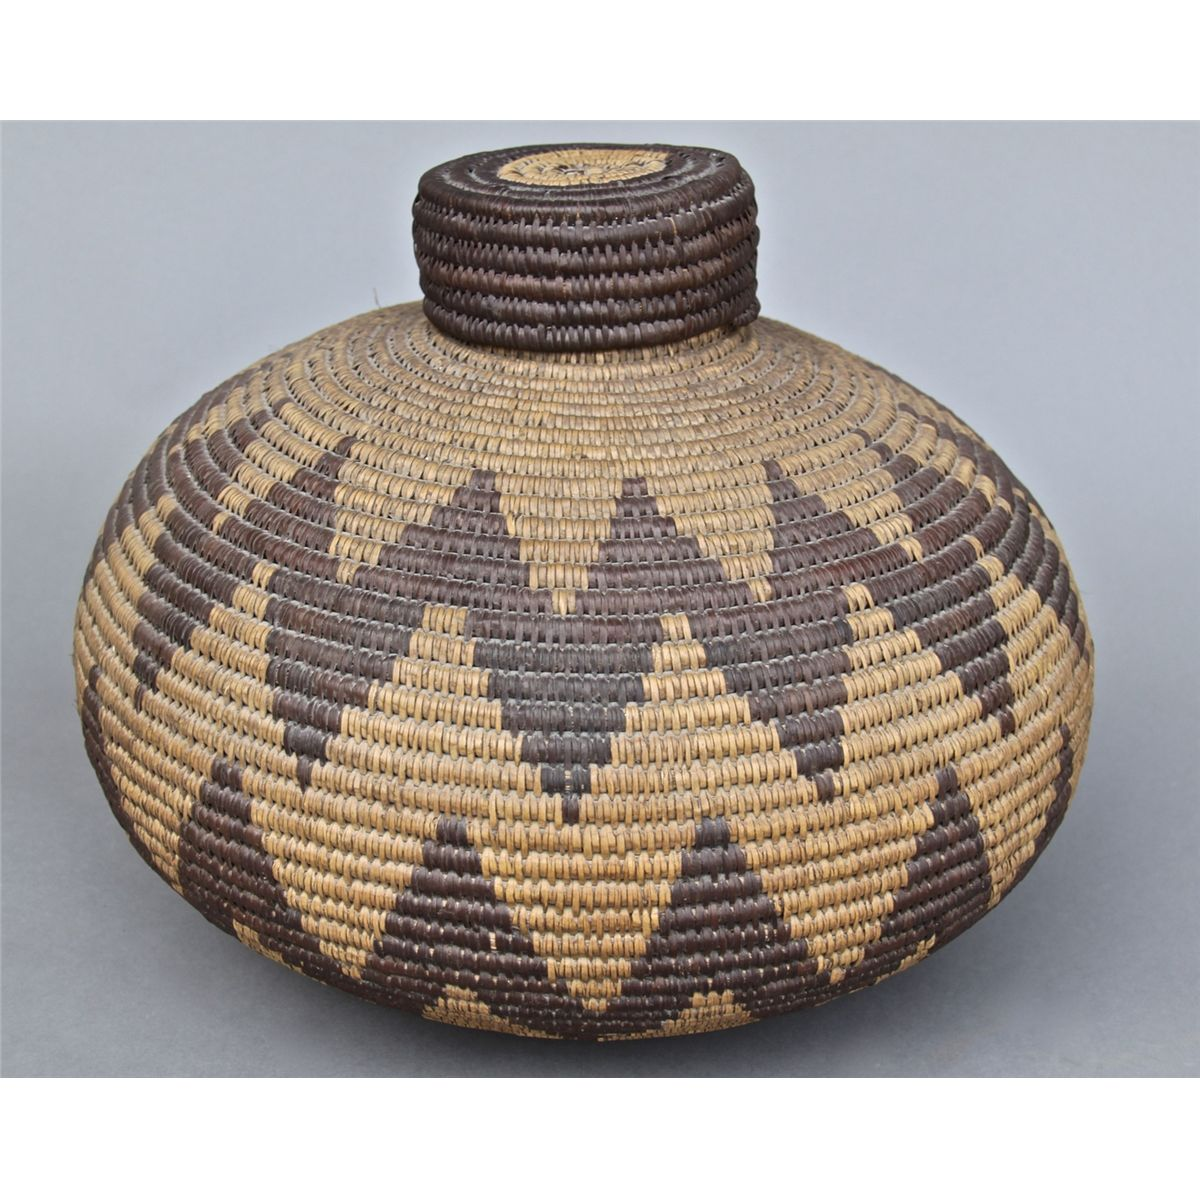 Native American Indian Old Woven Basket Woven Lid Height Lengt